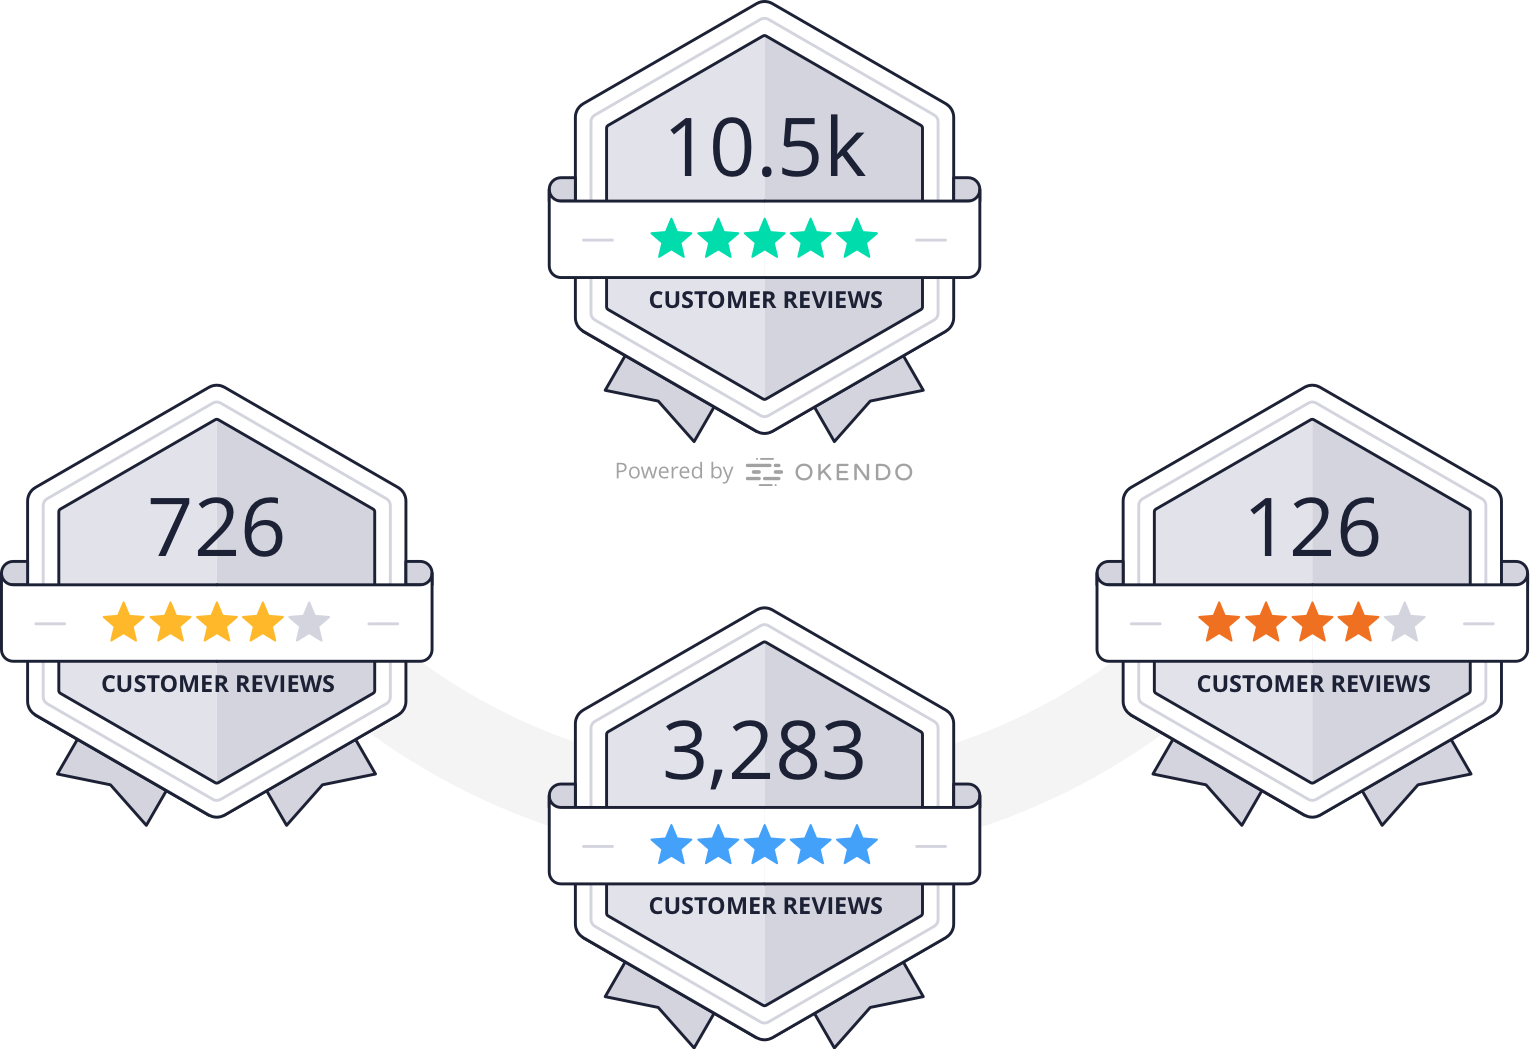 Reviews badges showing total number of reviews and average rating